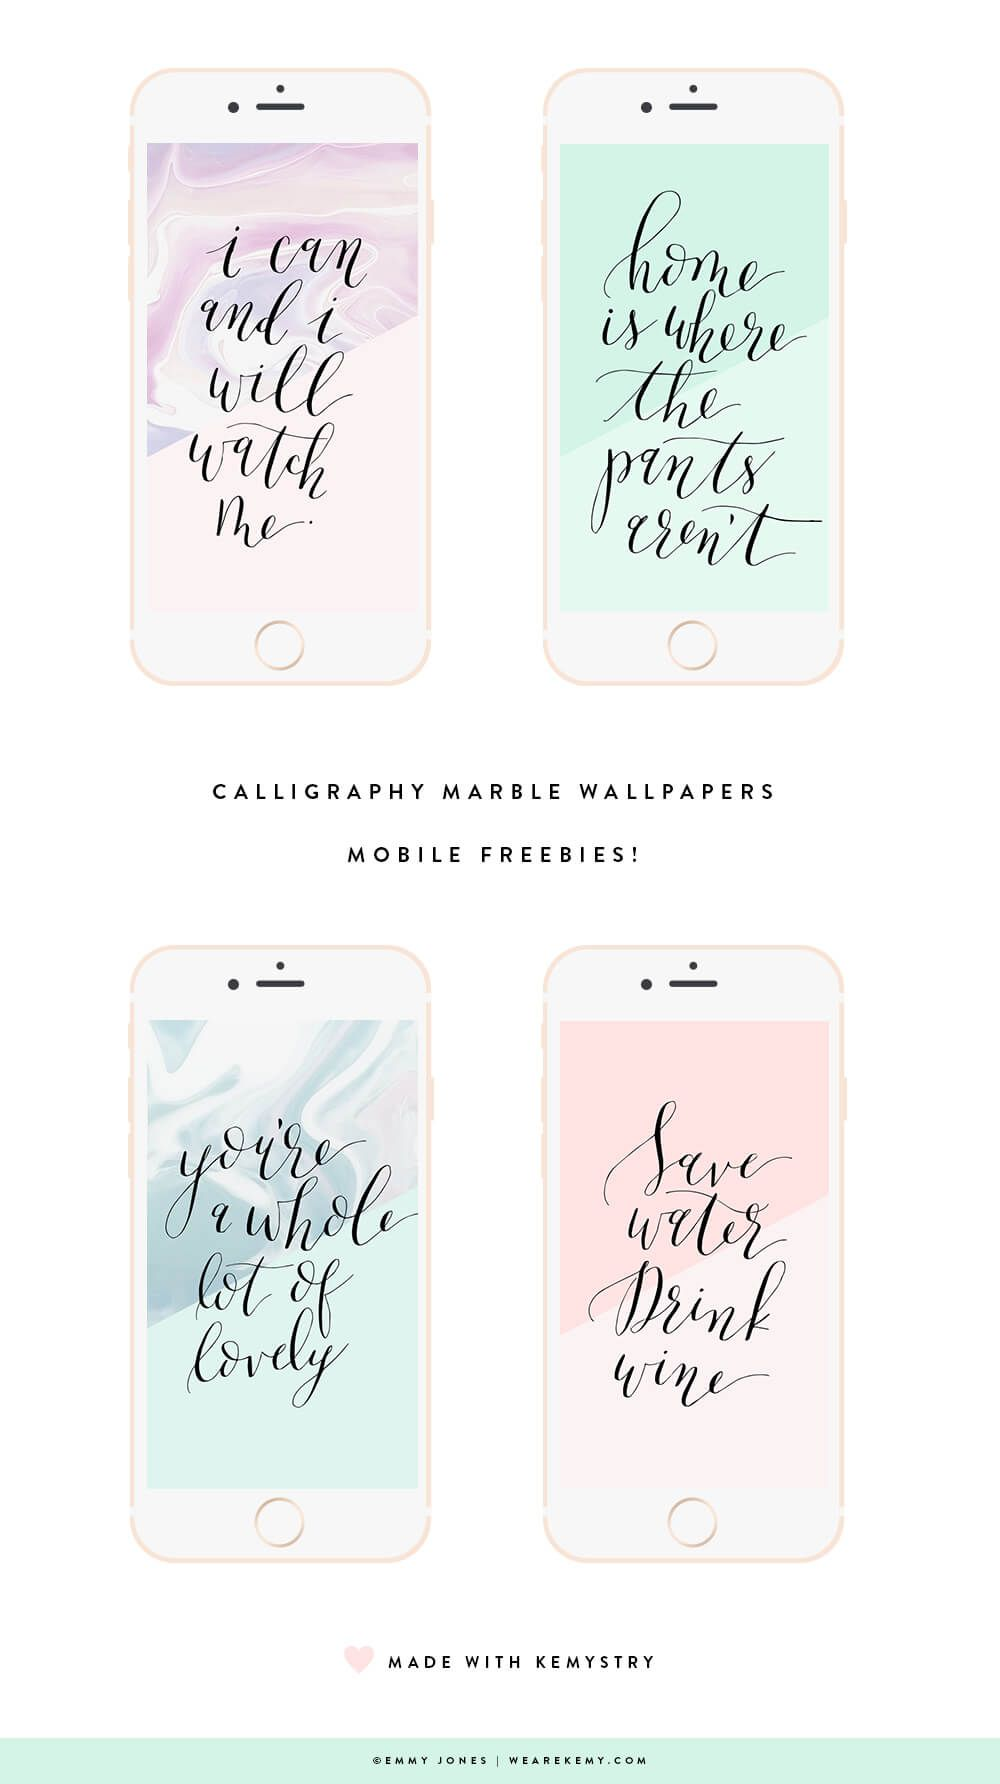 Great Wallpaper Marble Calligraphy - 49f3fc49ed29c5f65b3ee32c97635e78  You Should Have_51875.jpg